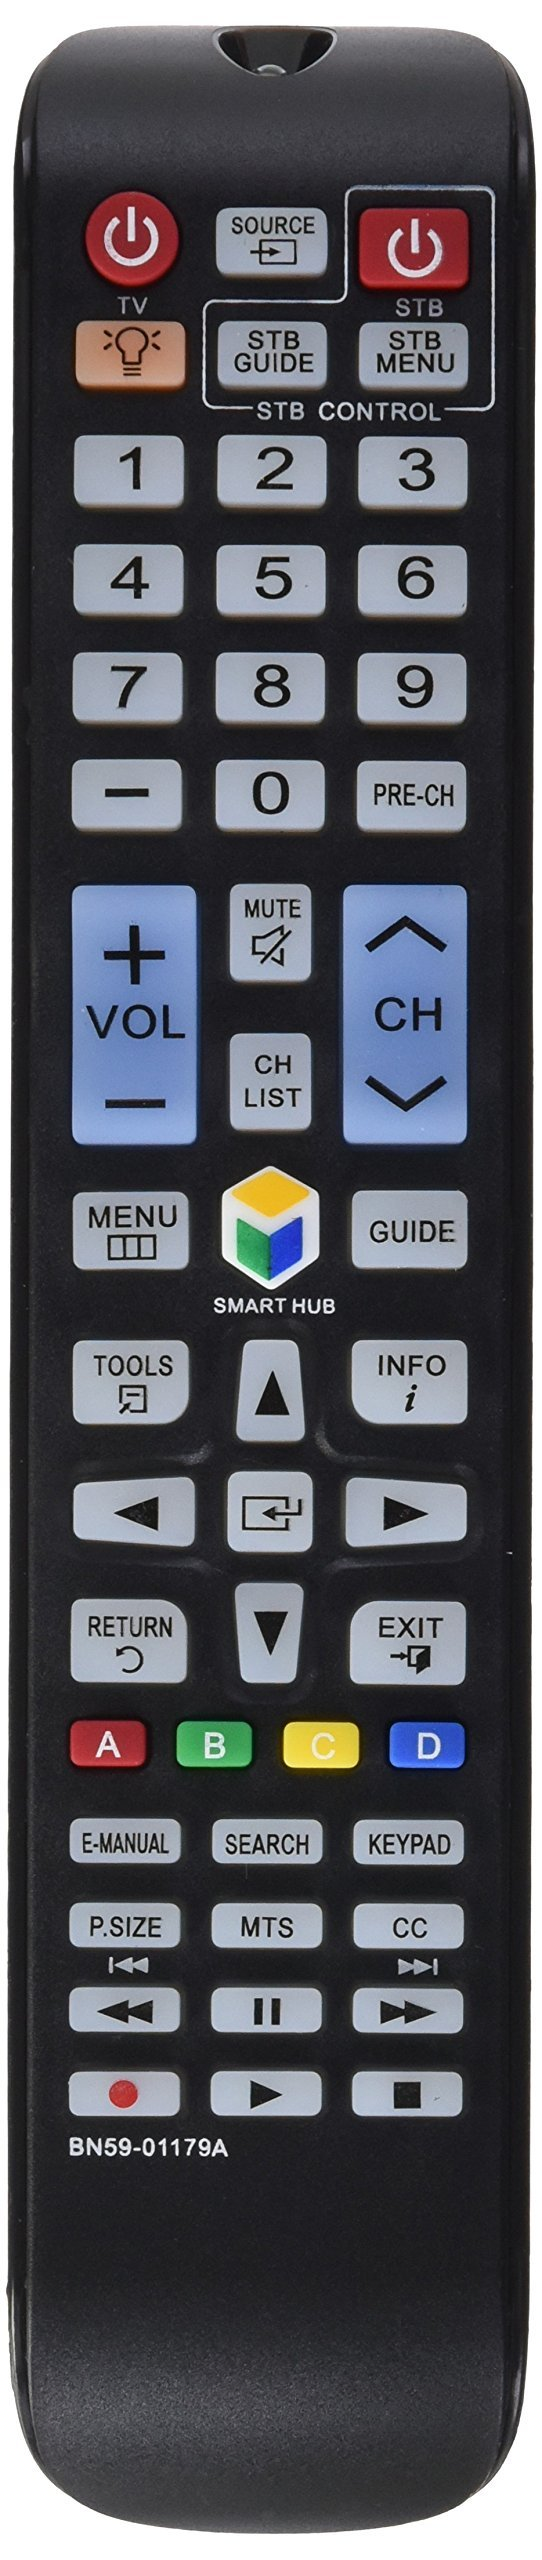 ALFG BN59-01179A-001 Generic Replacement Remote Control